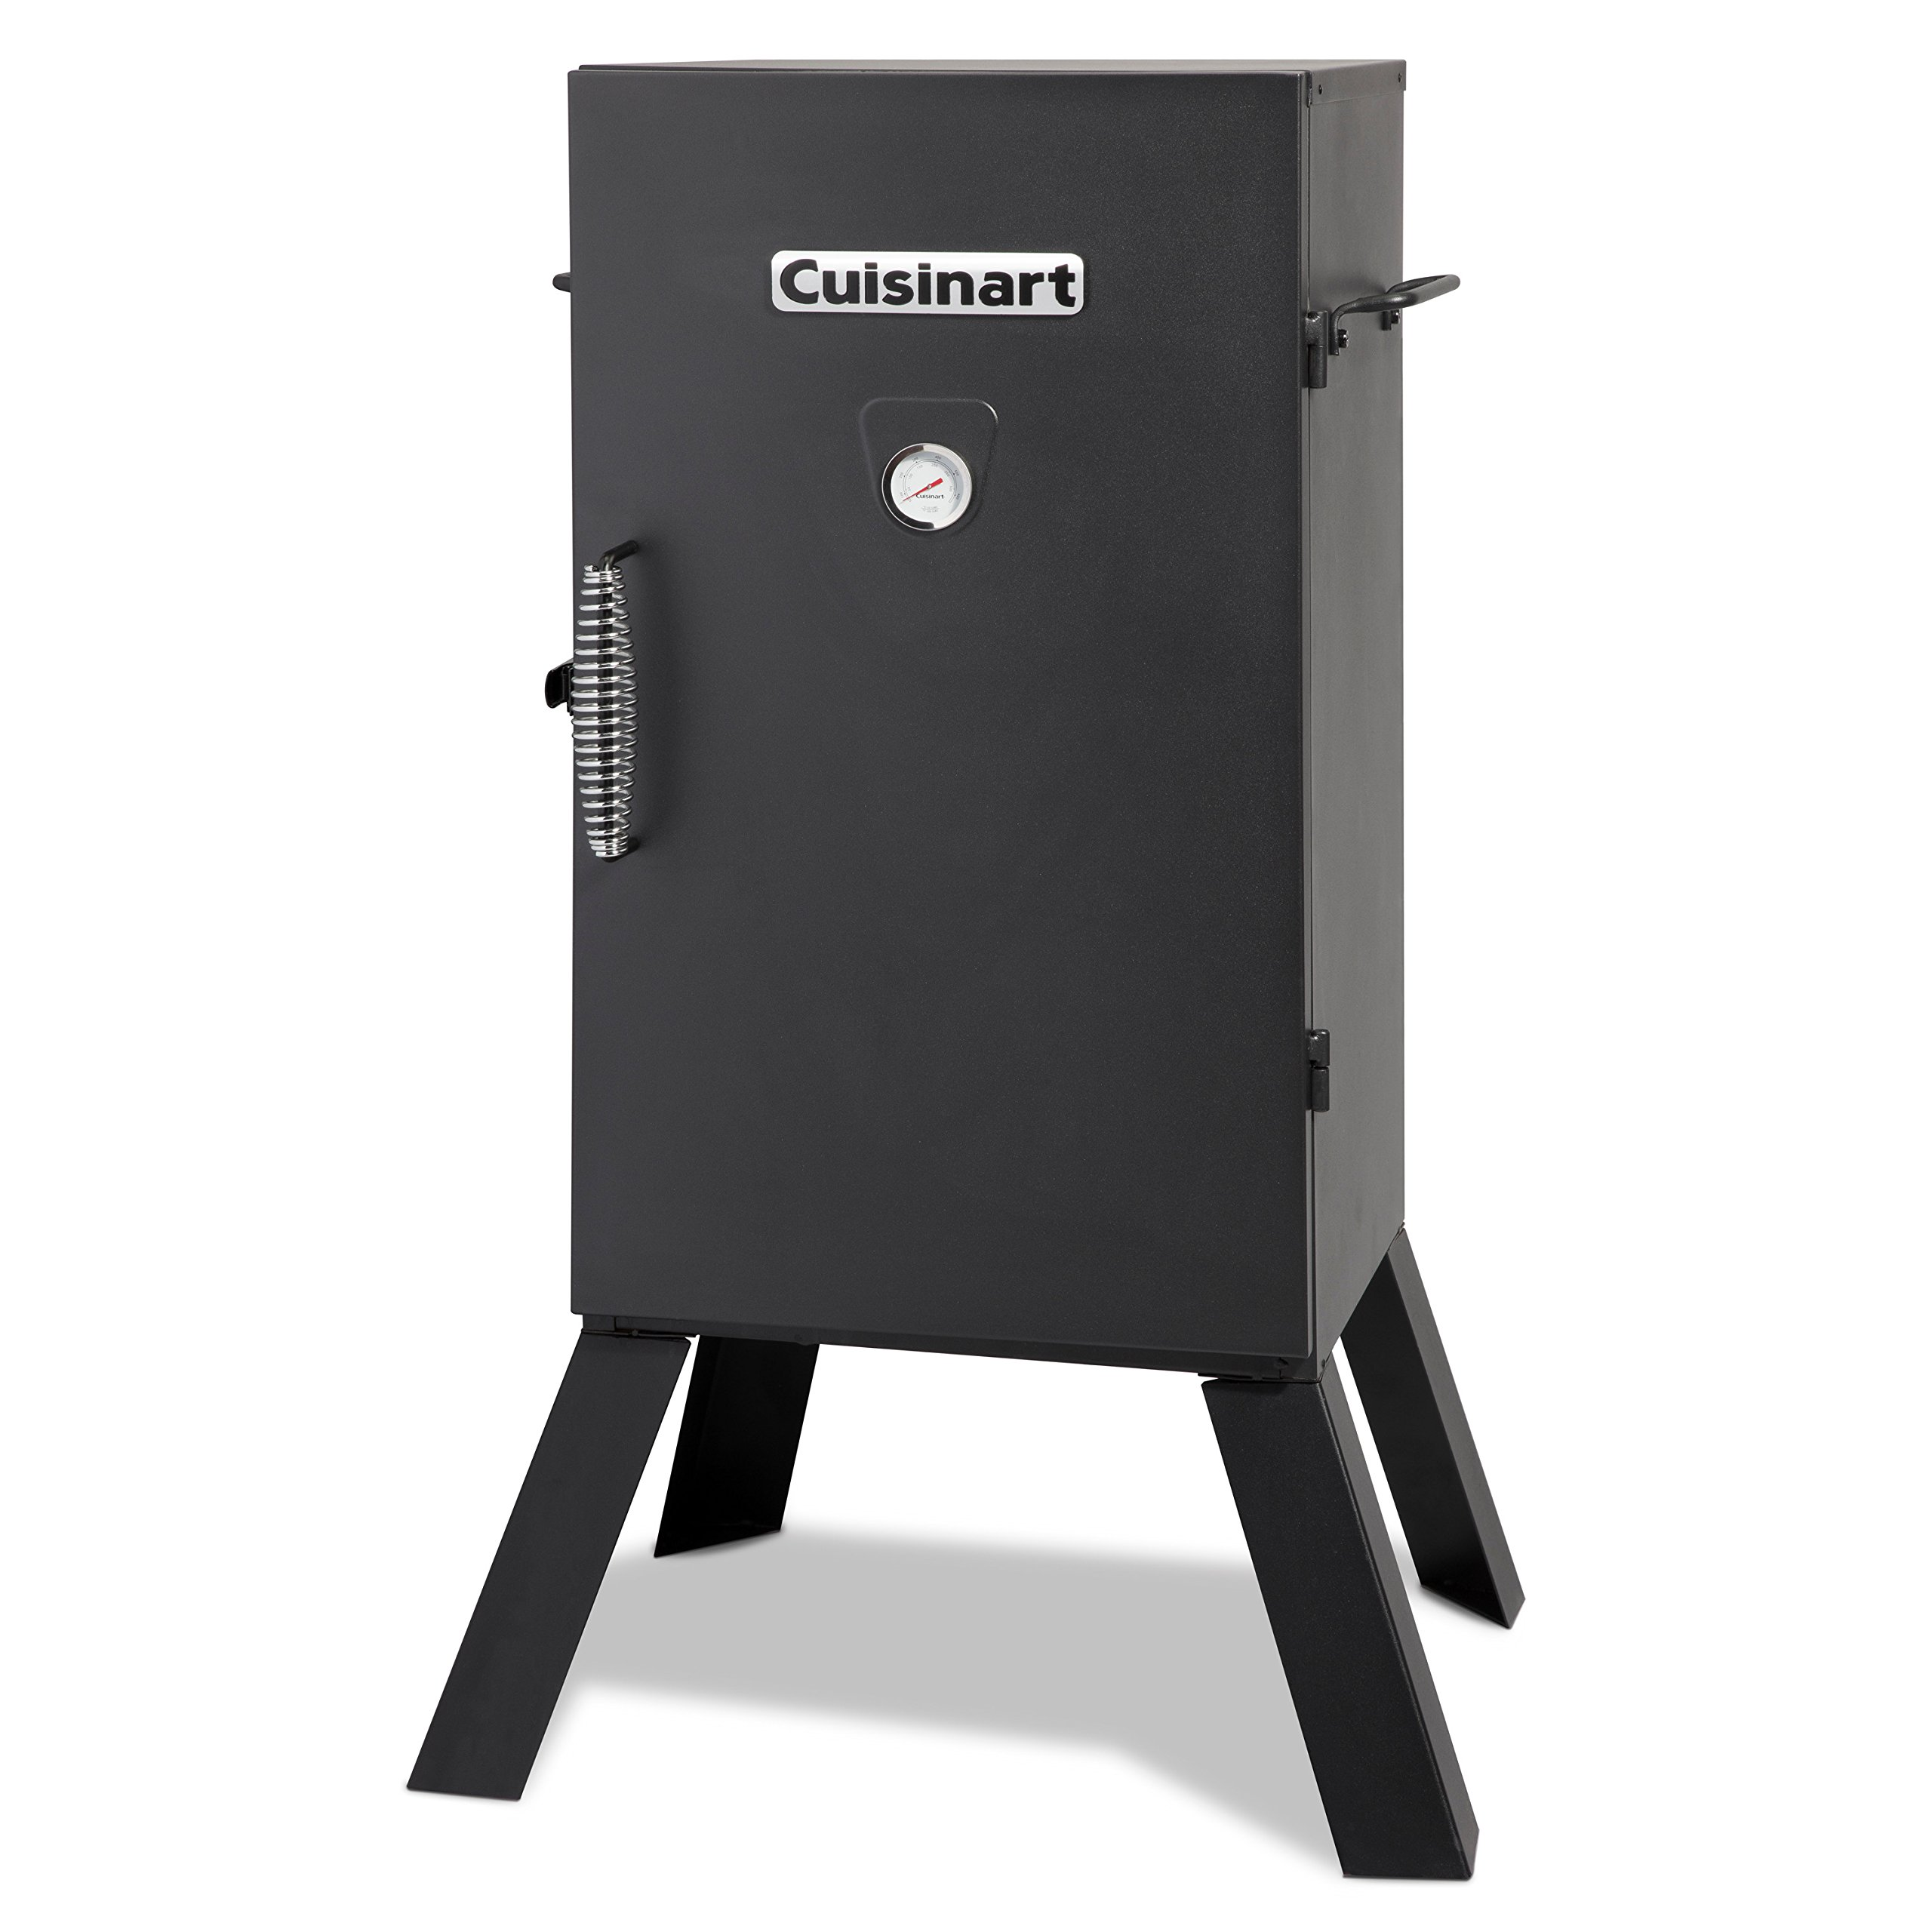 Cuisinart COS-330 Electric Smoker, 30'' by Cuisinart